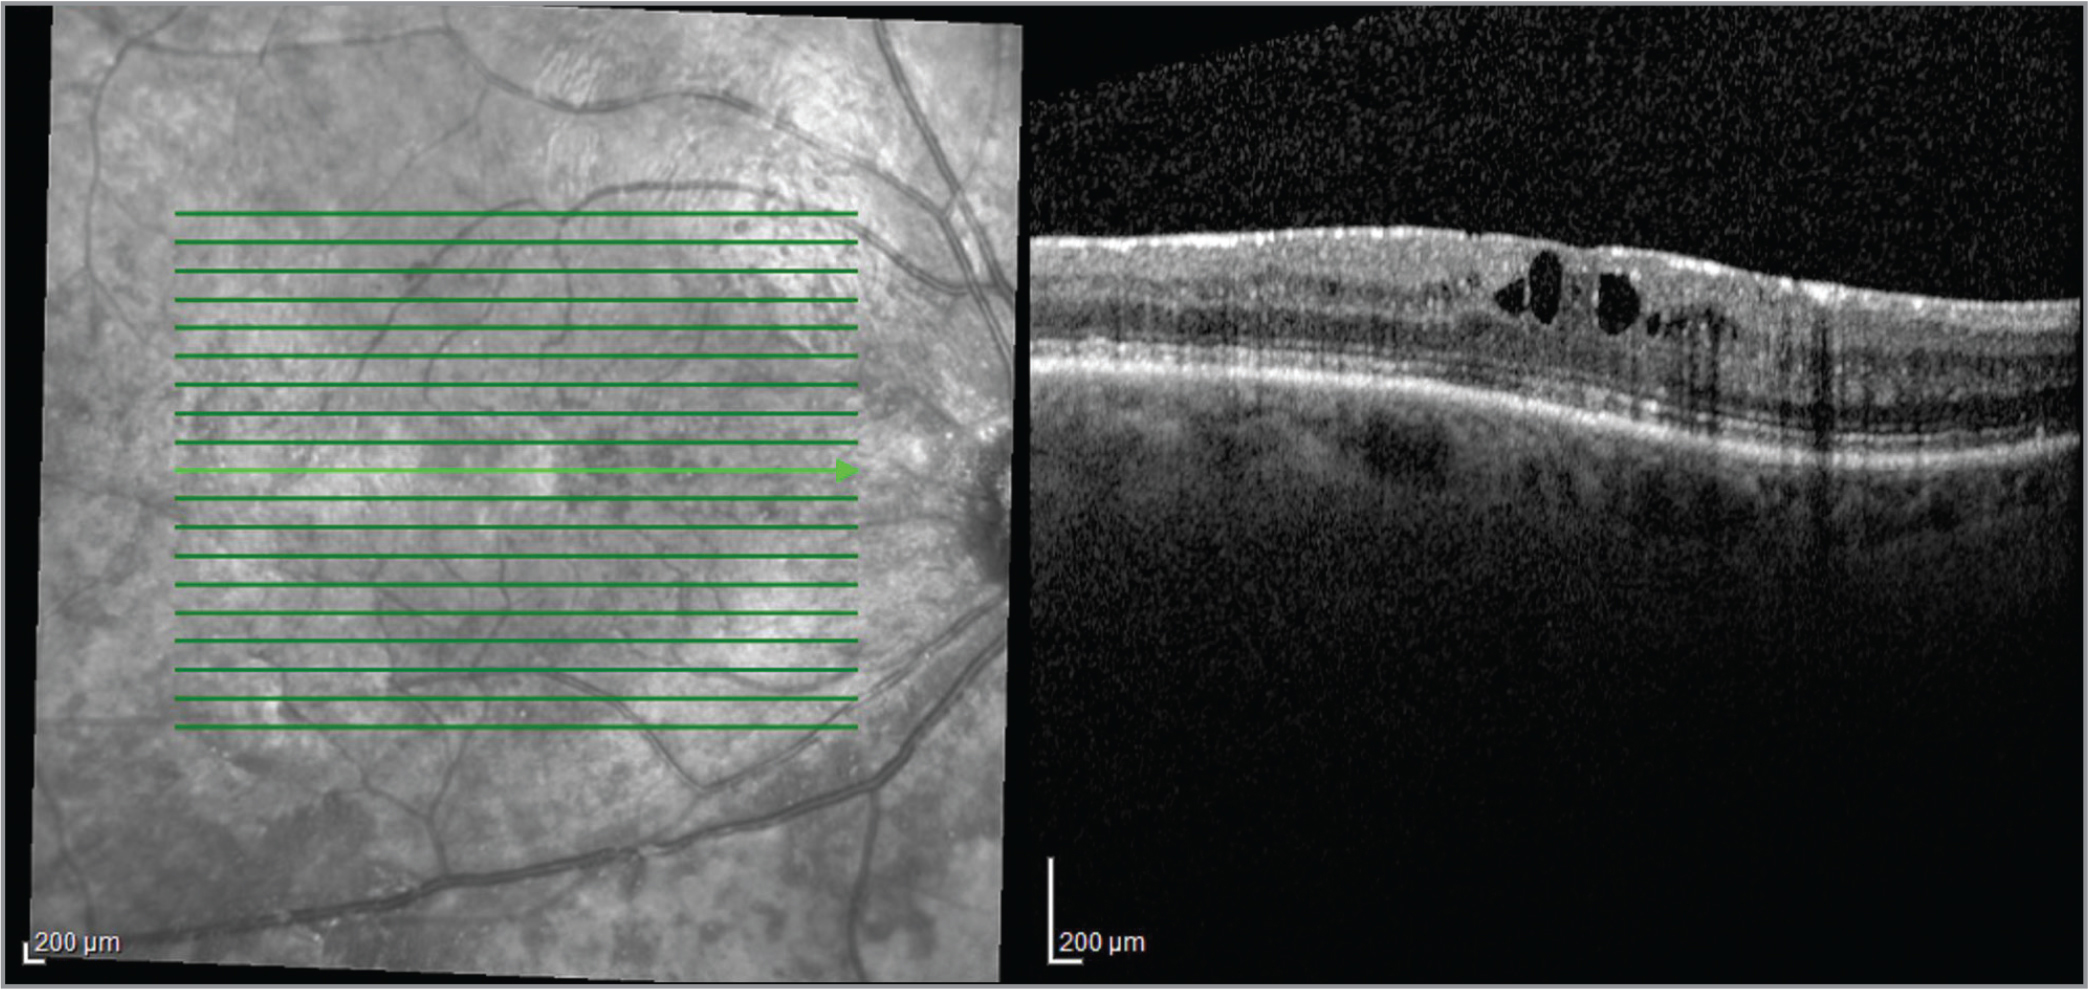 Spectral-domain optical coherence tomography imaging showing mild macular edema and epiretinal membrane. Focal dark areas on the near-infrared image highlight the preretinal pigment deposits.